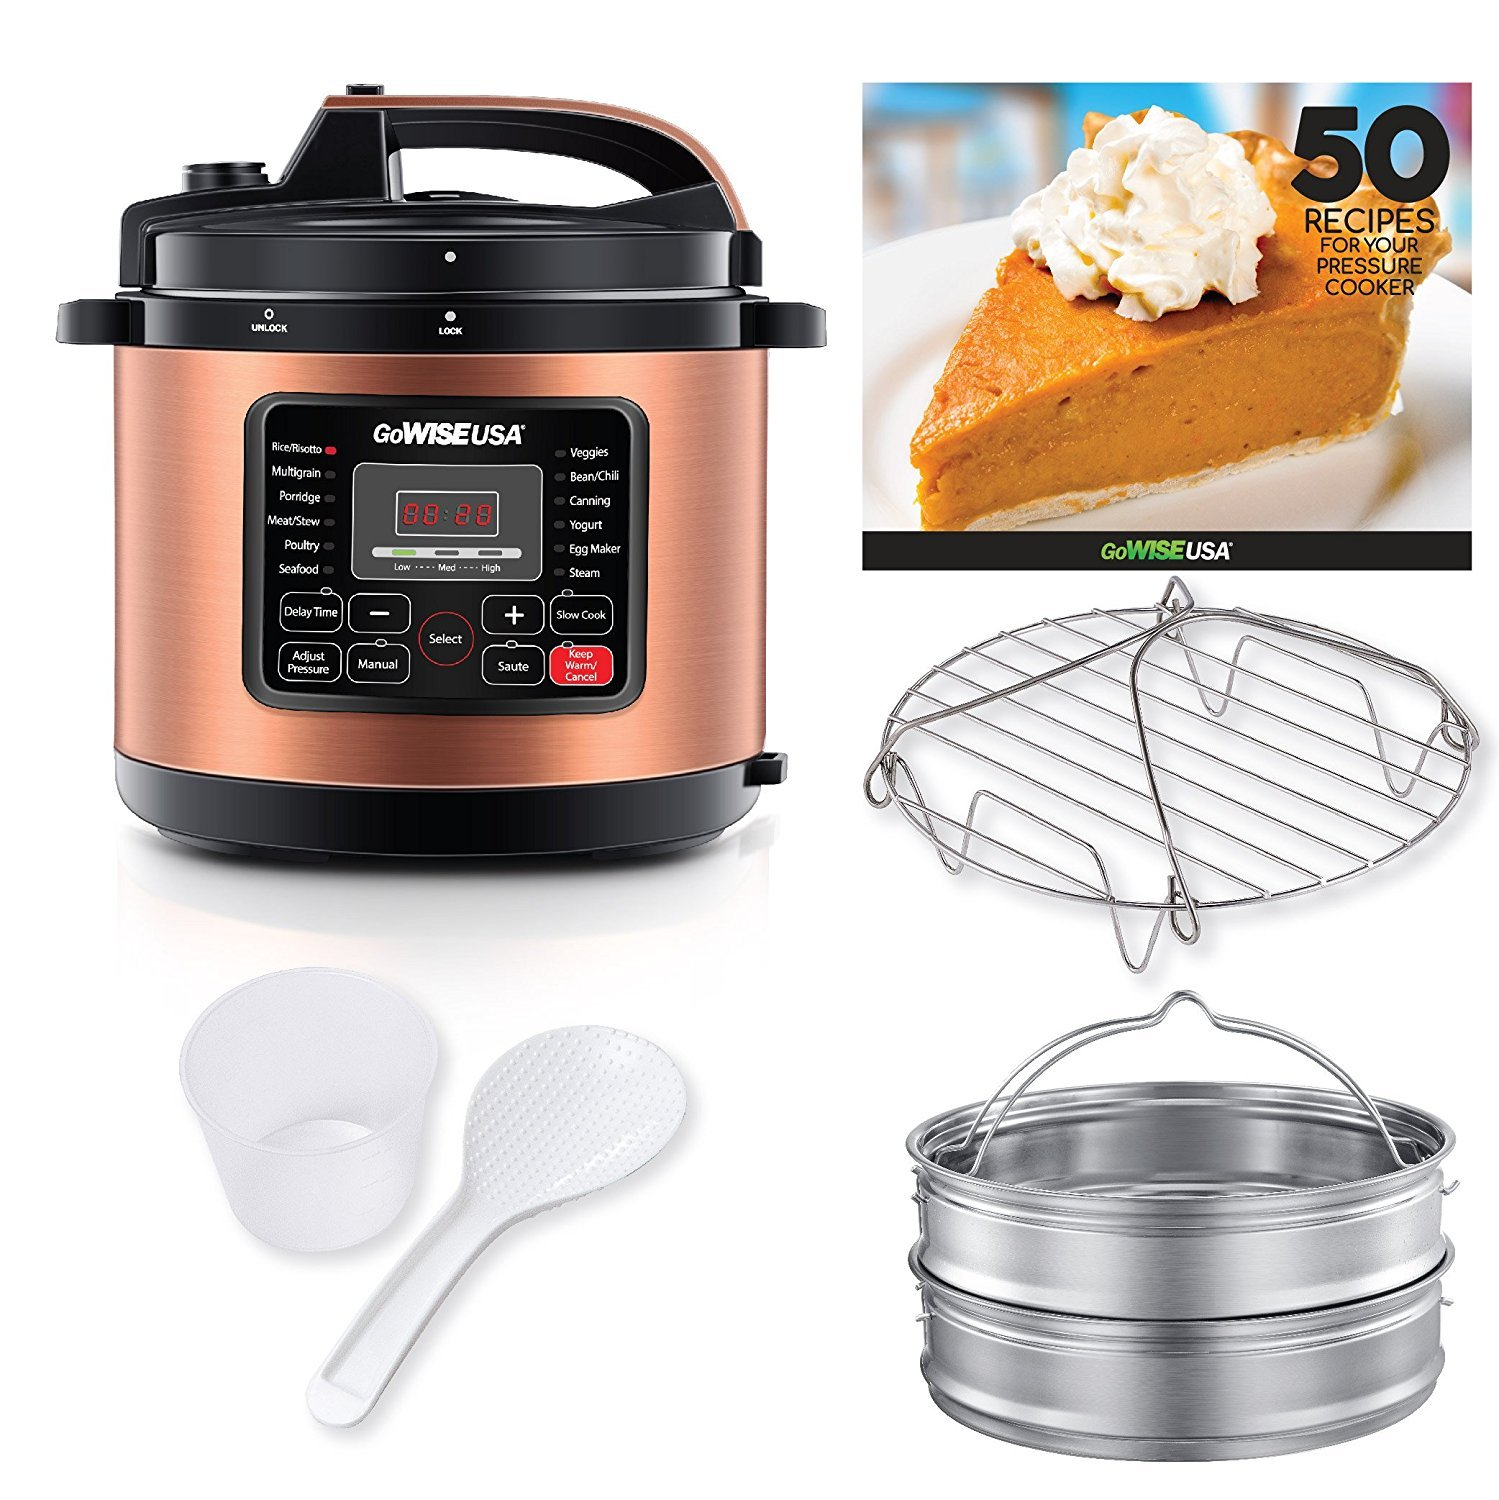 GoWISE USA 12-in-1 Electric Pressure Cooker with Measuring Cup, Stainless Steel Rack and Basket, and Spoon (10-QT, Copper)